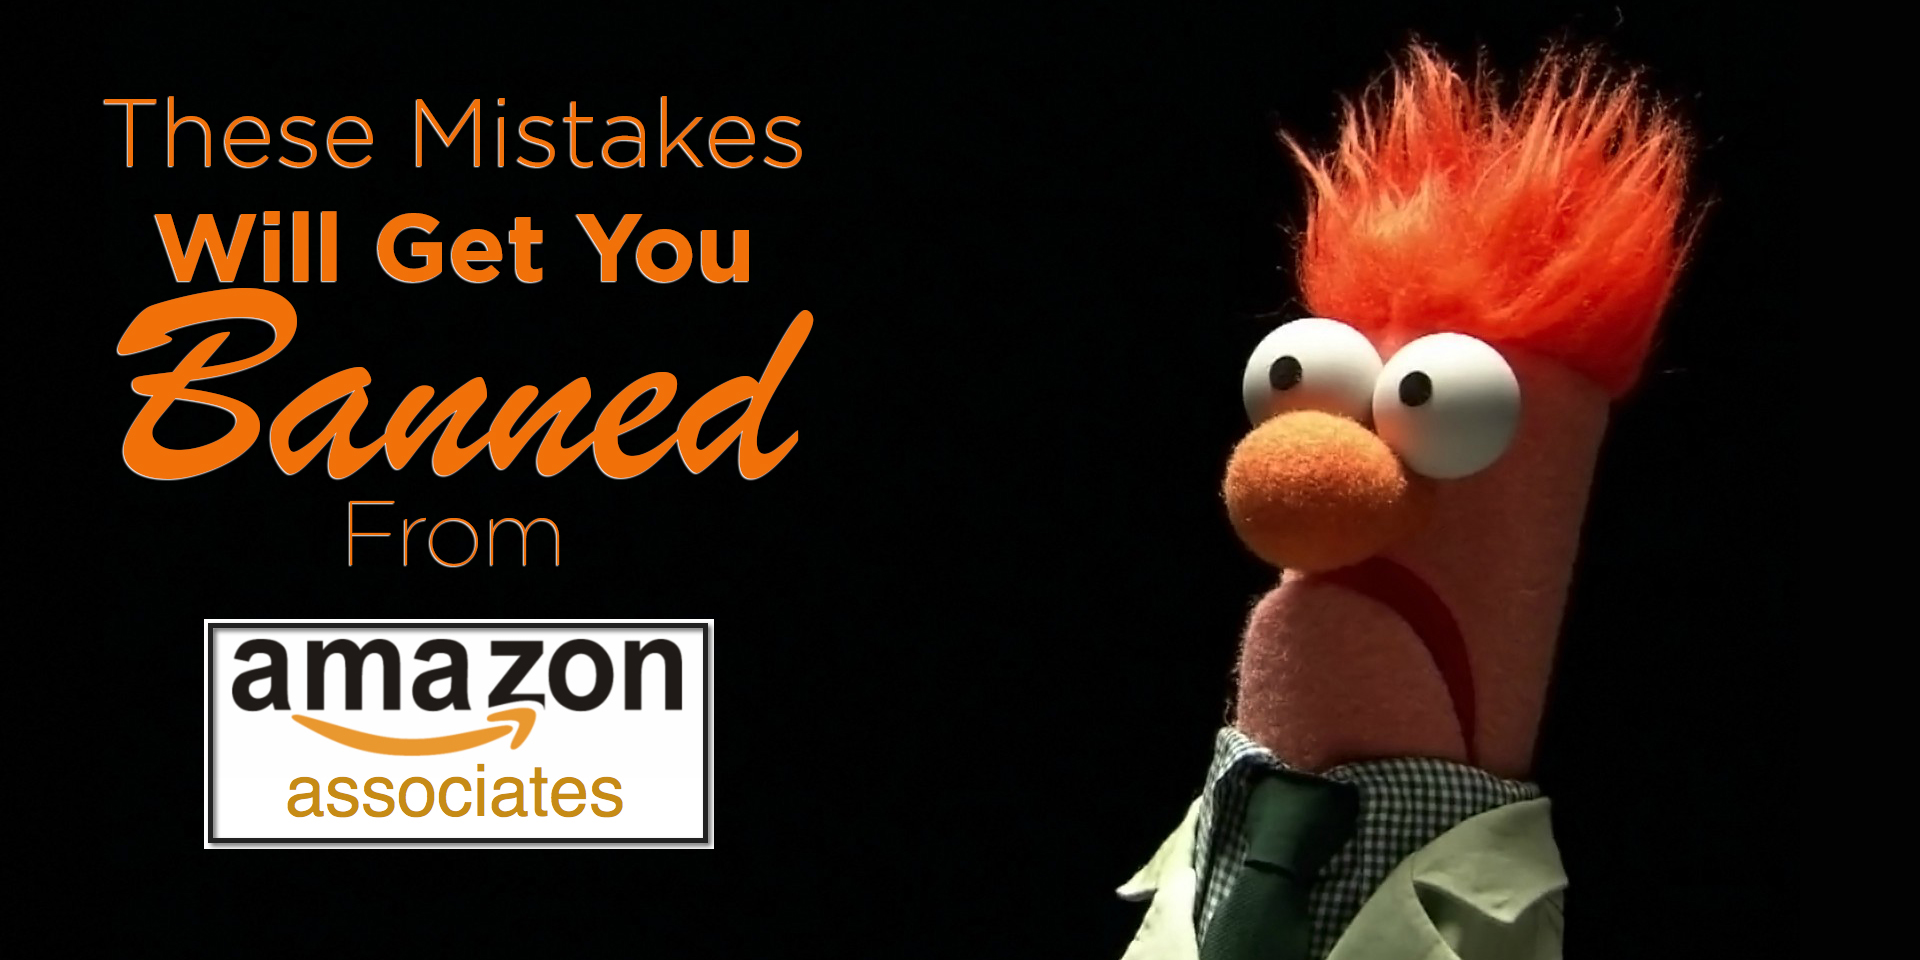 These Mistakes Will Get You Banned As An Amazon Affiliate (Most Do # 1 & 7)